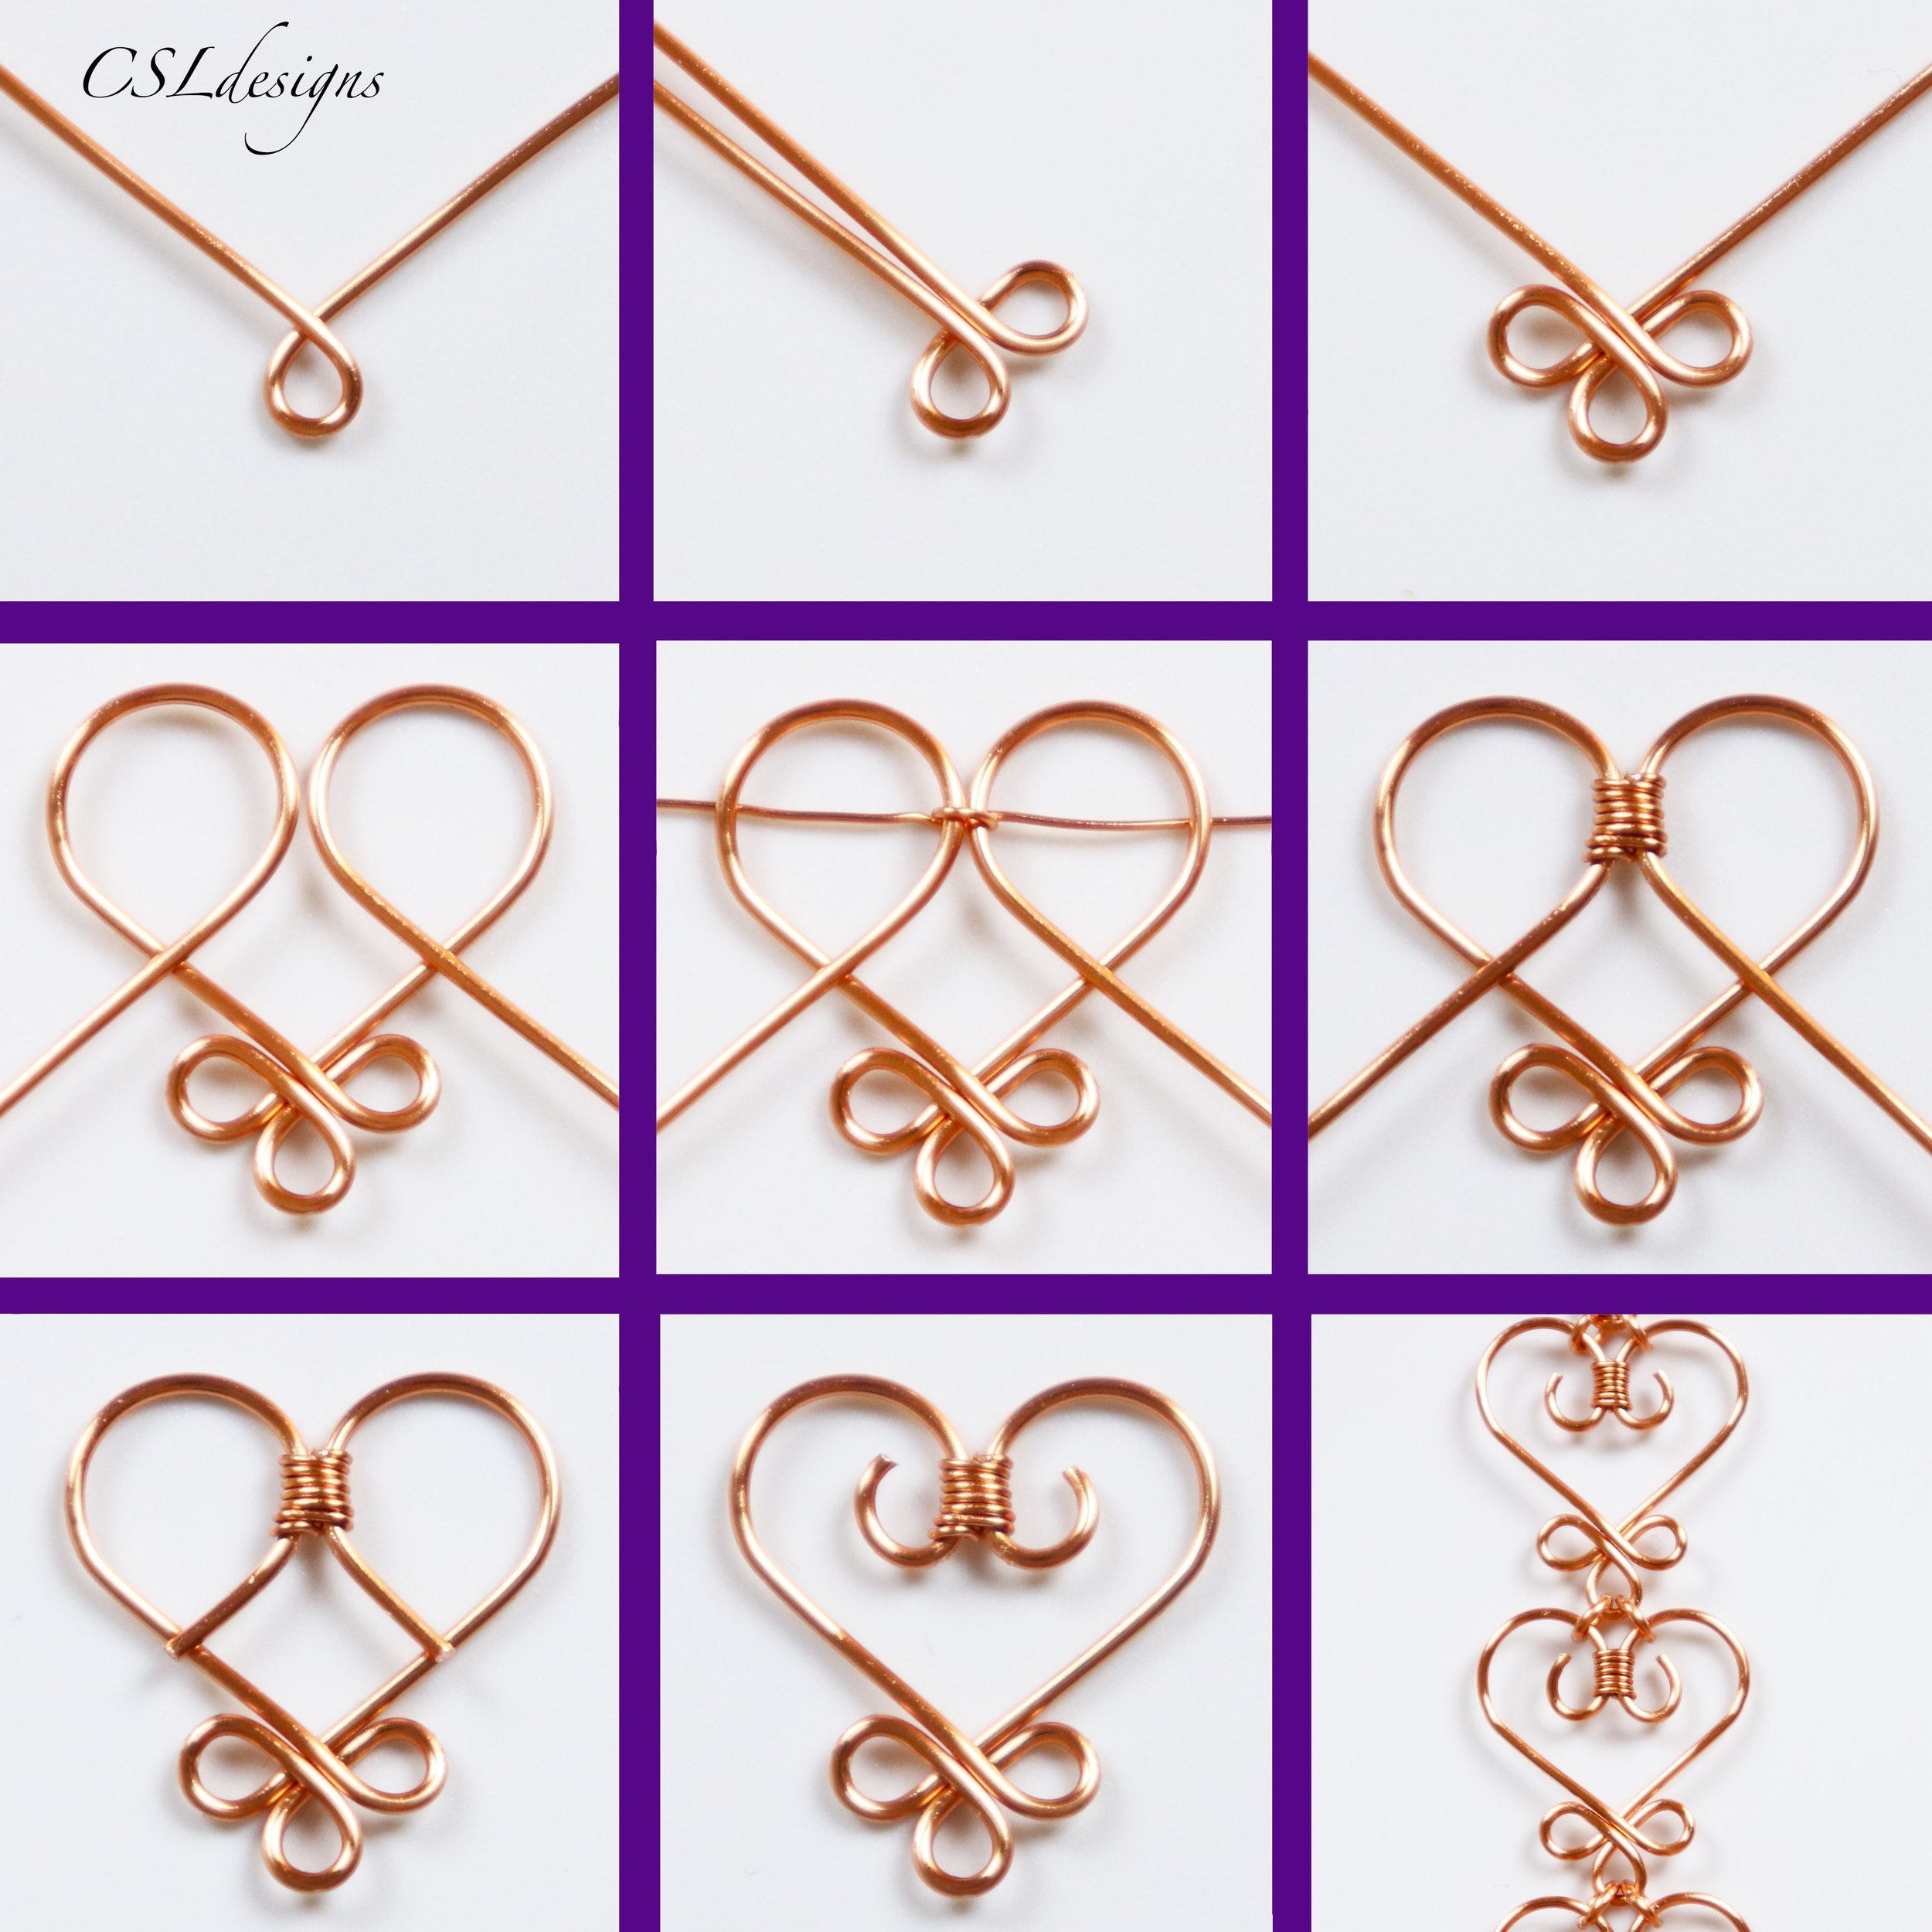 Celtic wirework heart 9 in 1.jpg